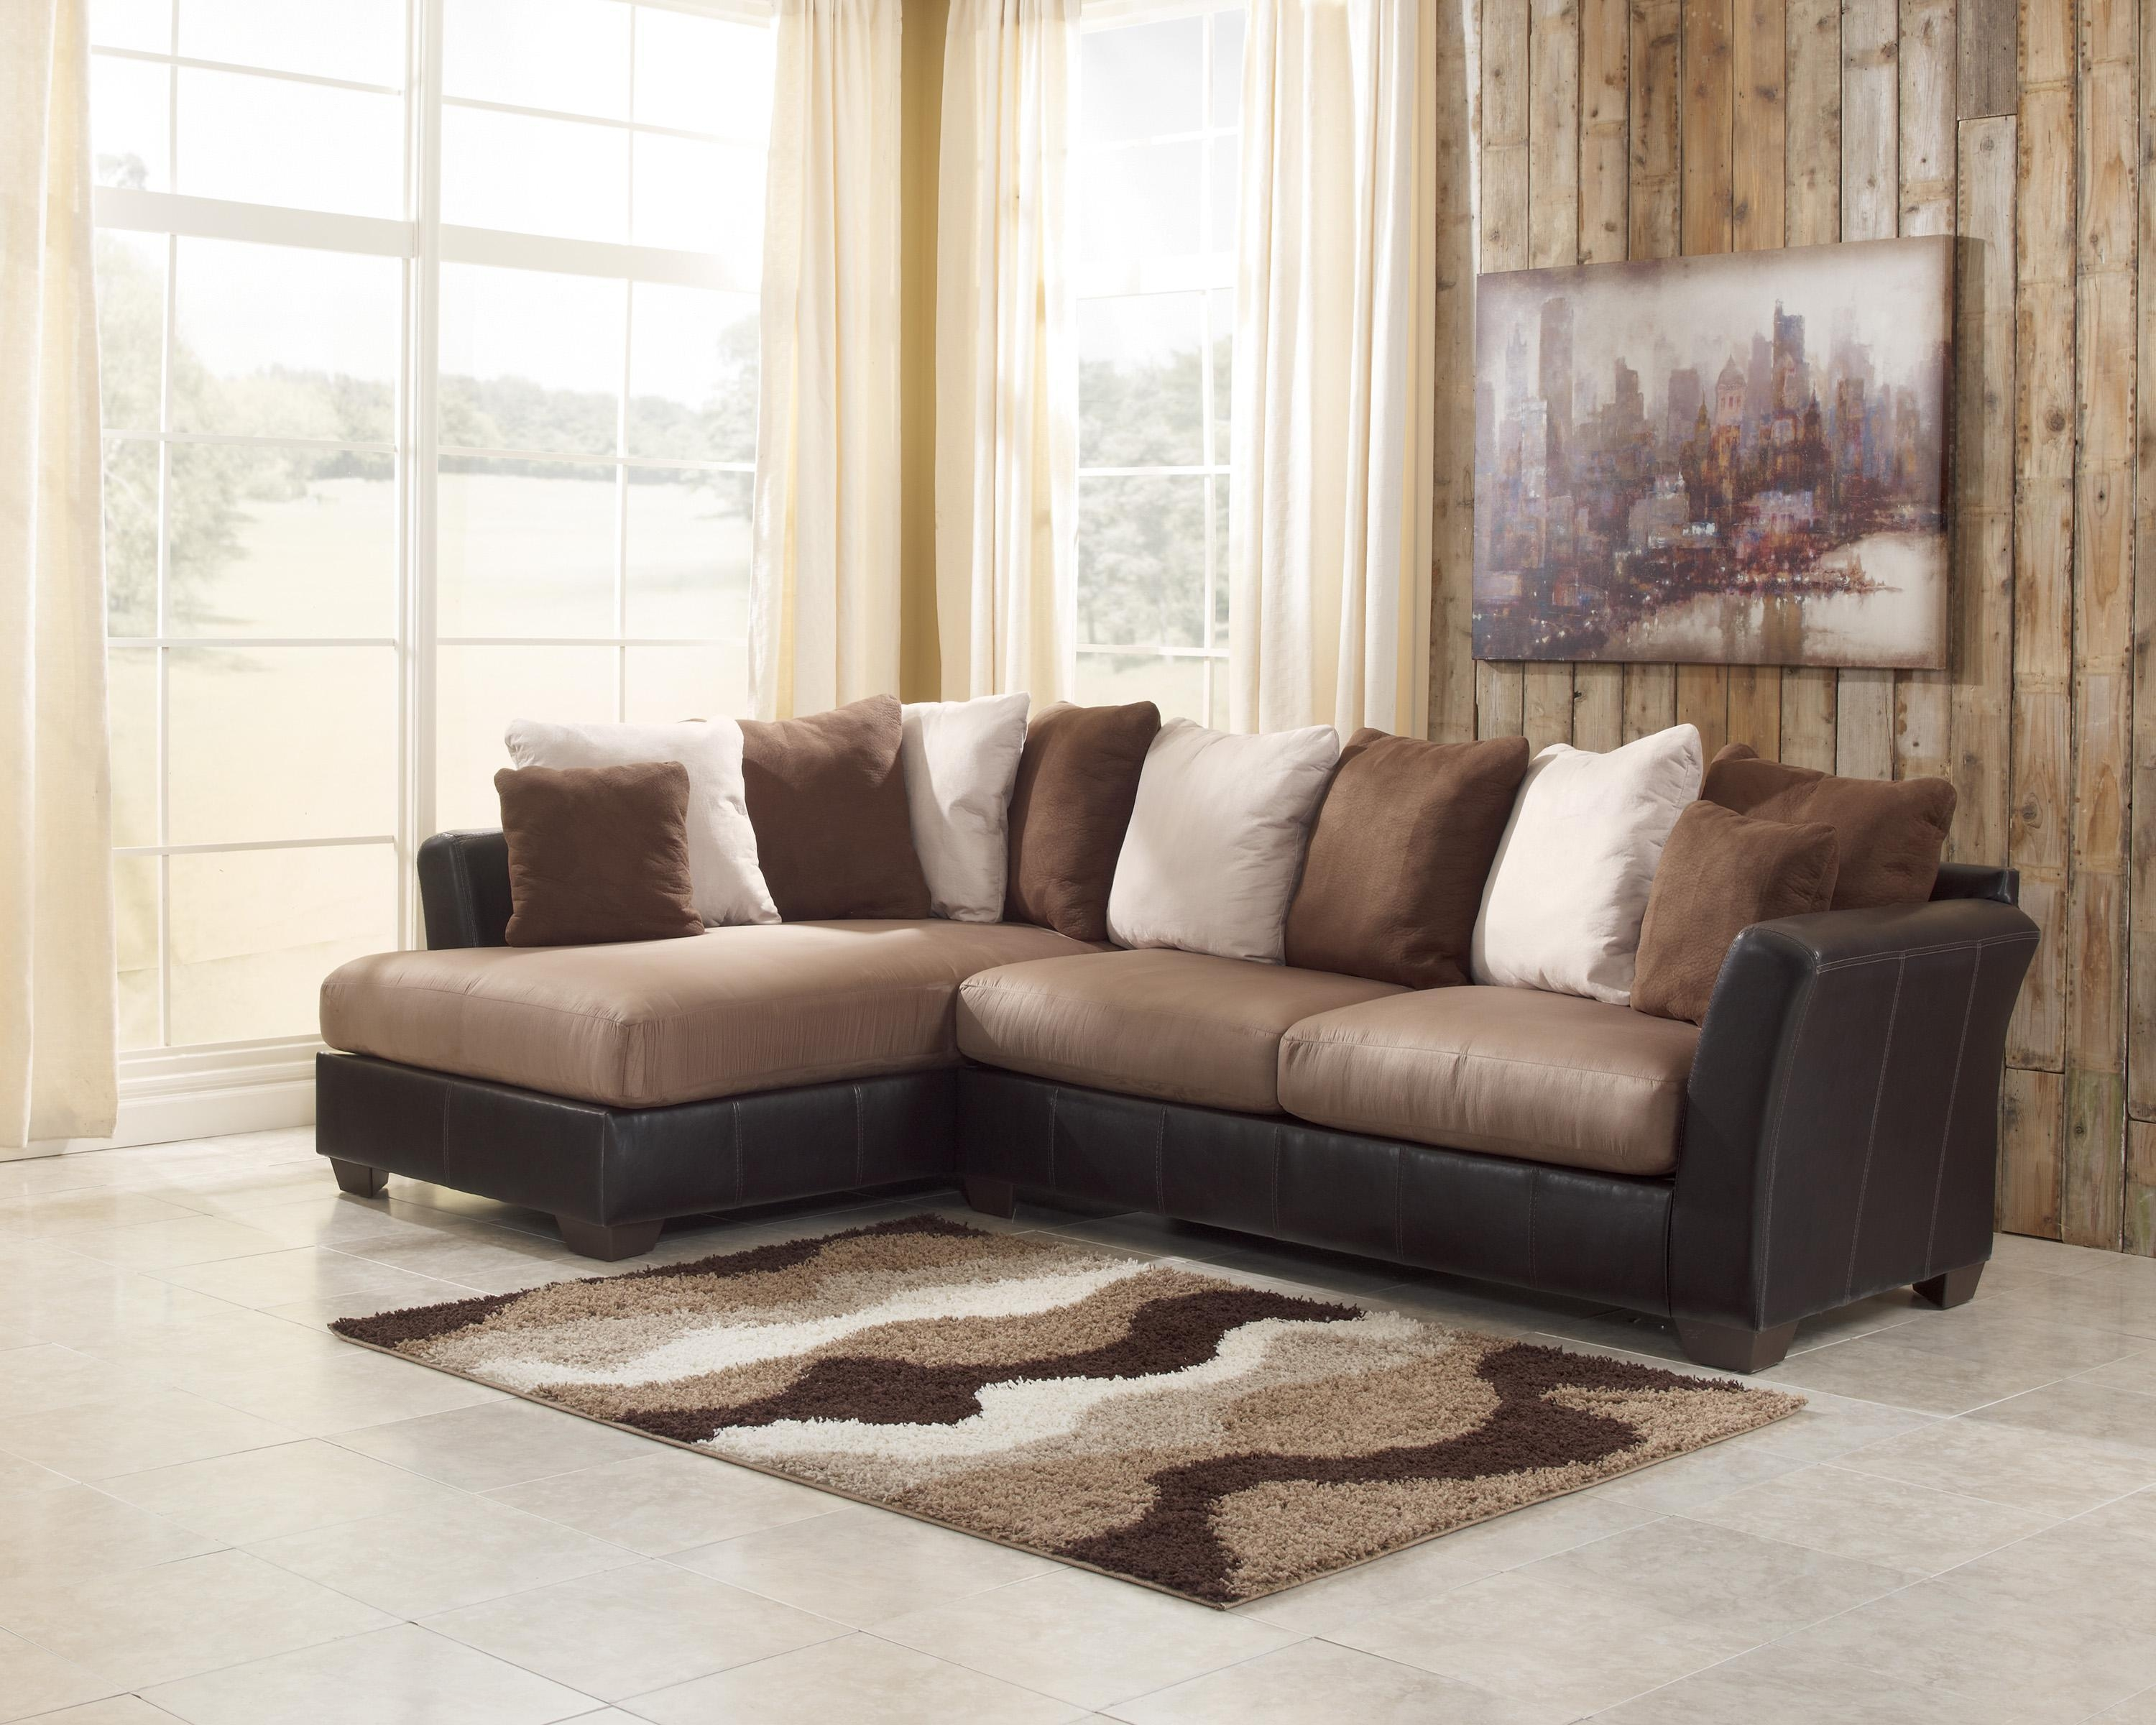 decent katisha by in avalon chaise web lsf fancy cfm zq particular chelseahomeyorkpiecesectionalsofa wolf gallery furniture art furnitureusa sectional roxanne alluring sofa jackson piece